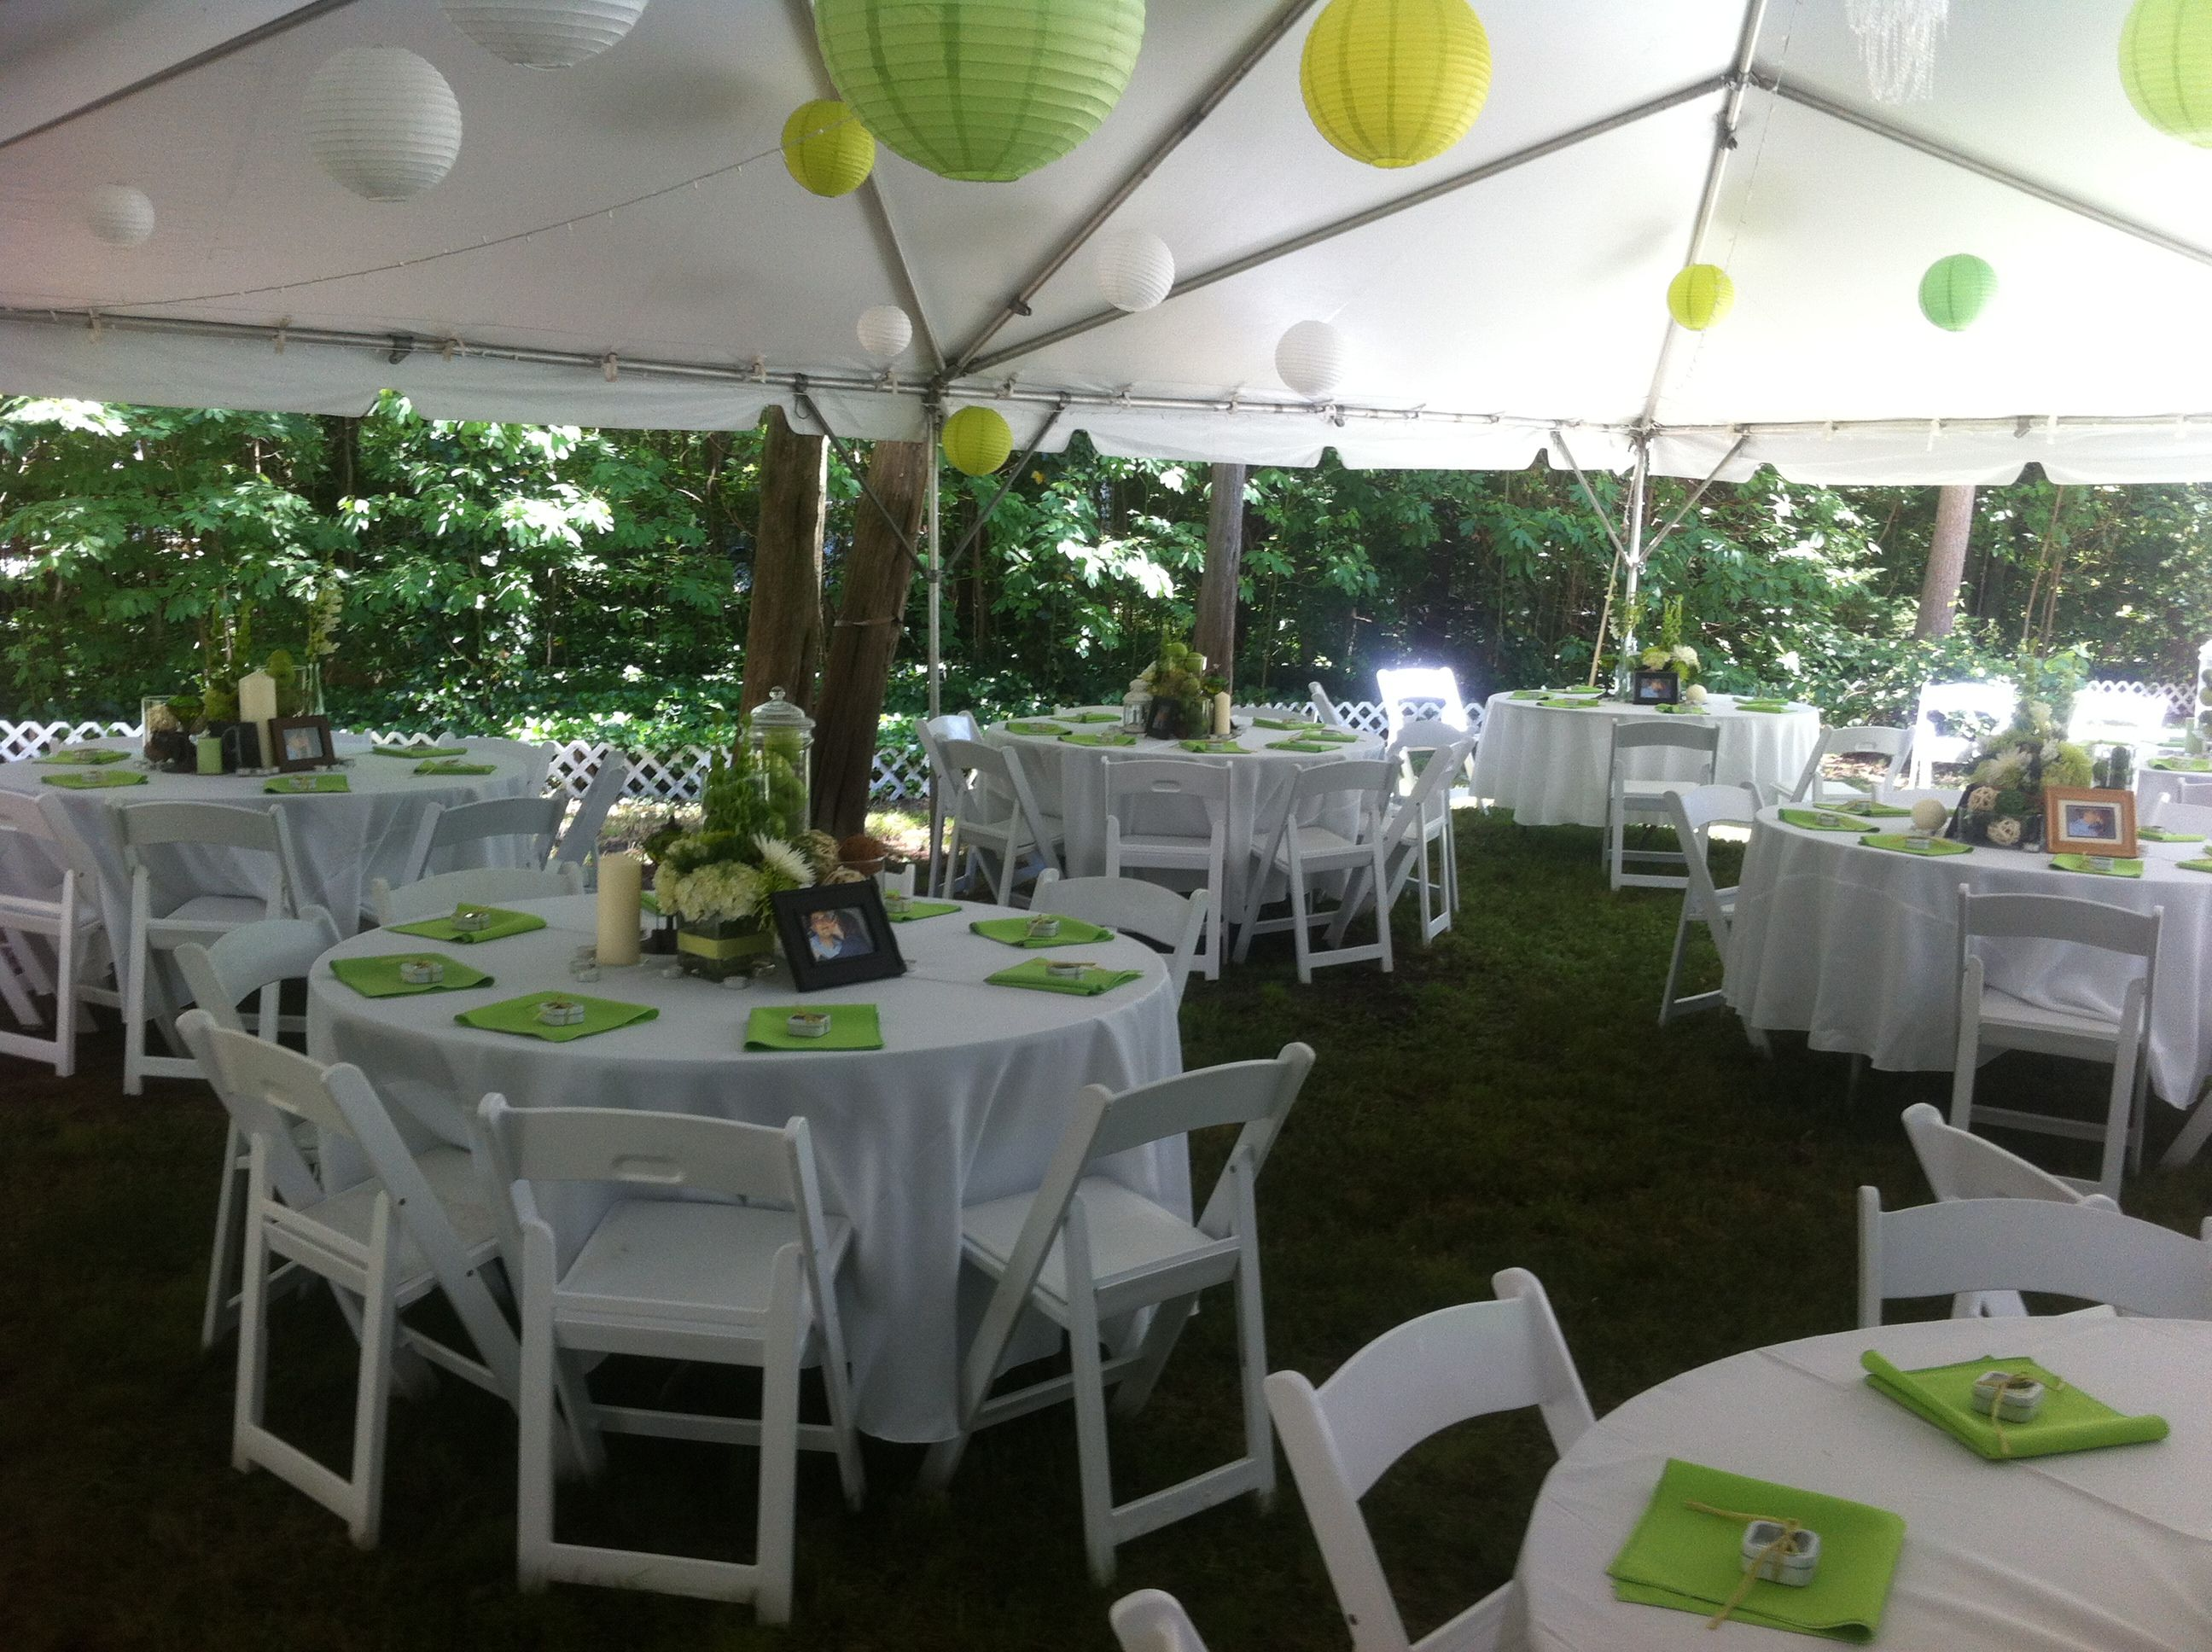 ideas decor home tent simple backyard reception wedding decorations a decoration office amys outdoor gallery on budget